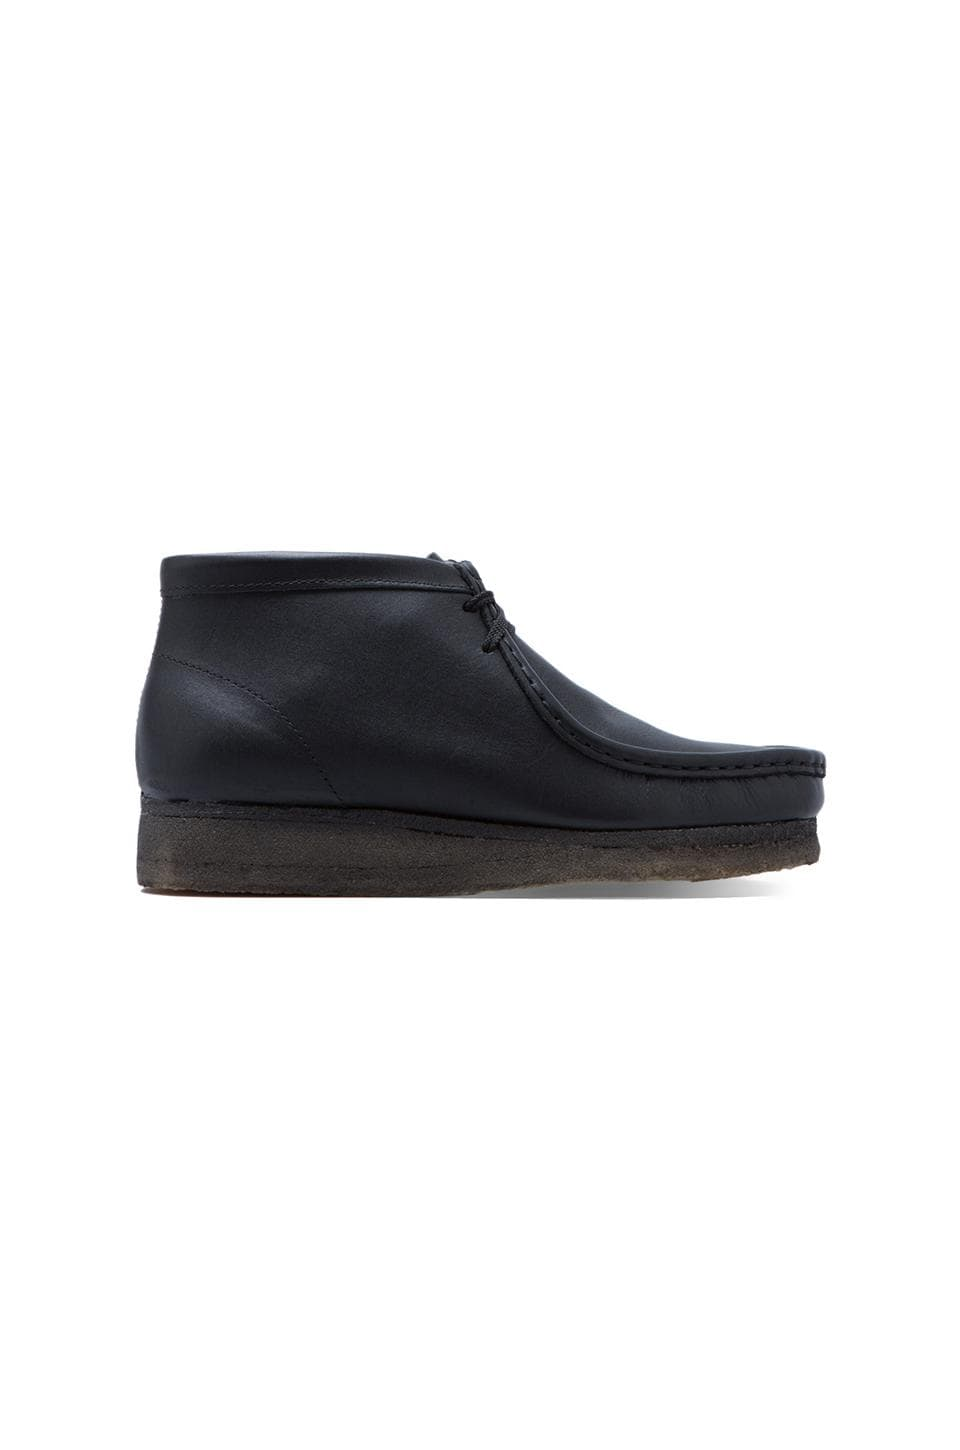 Clarks Originals Wallabee Boot in Black Leather